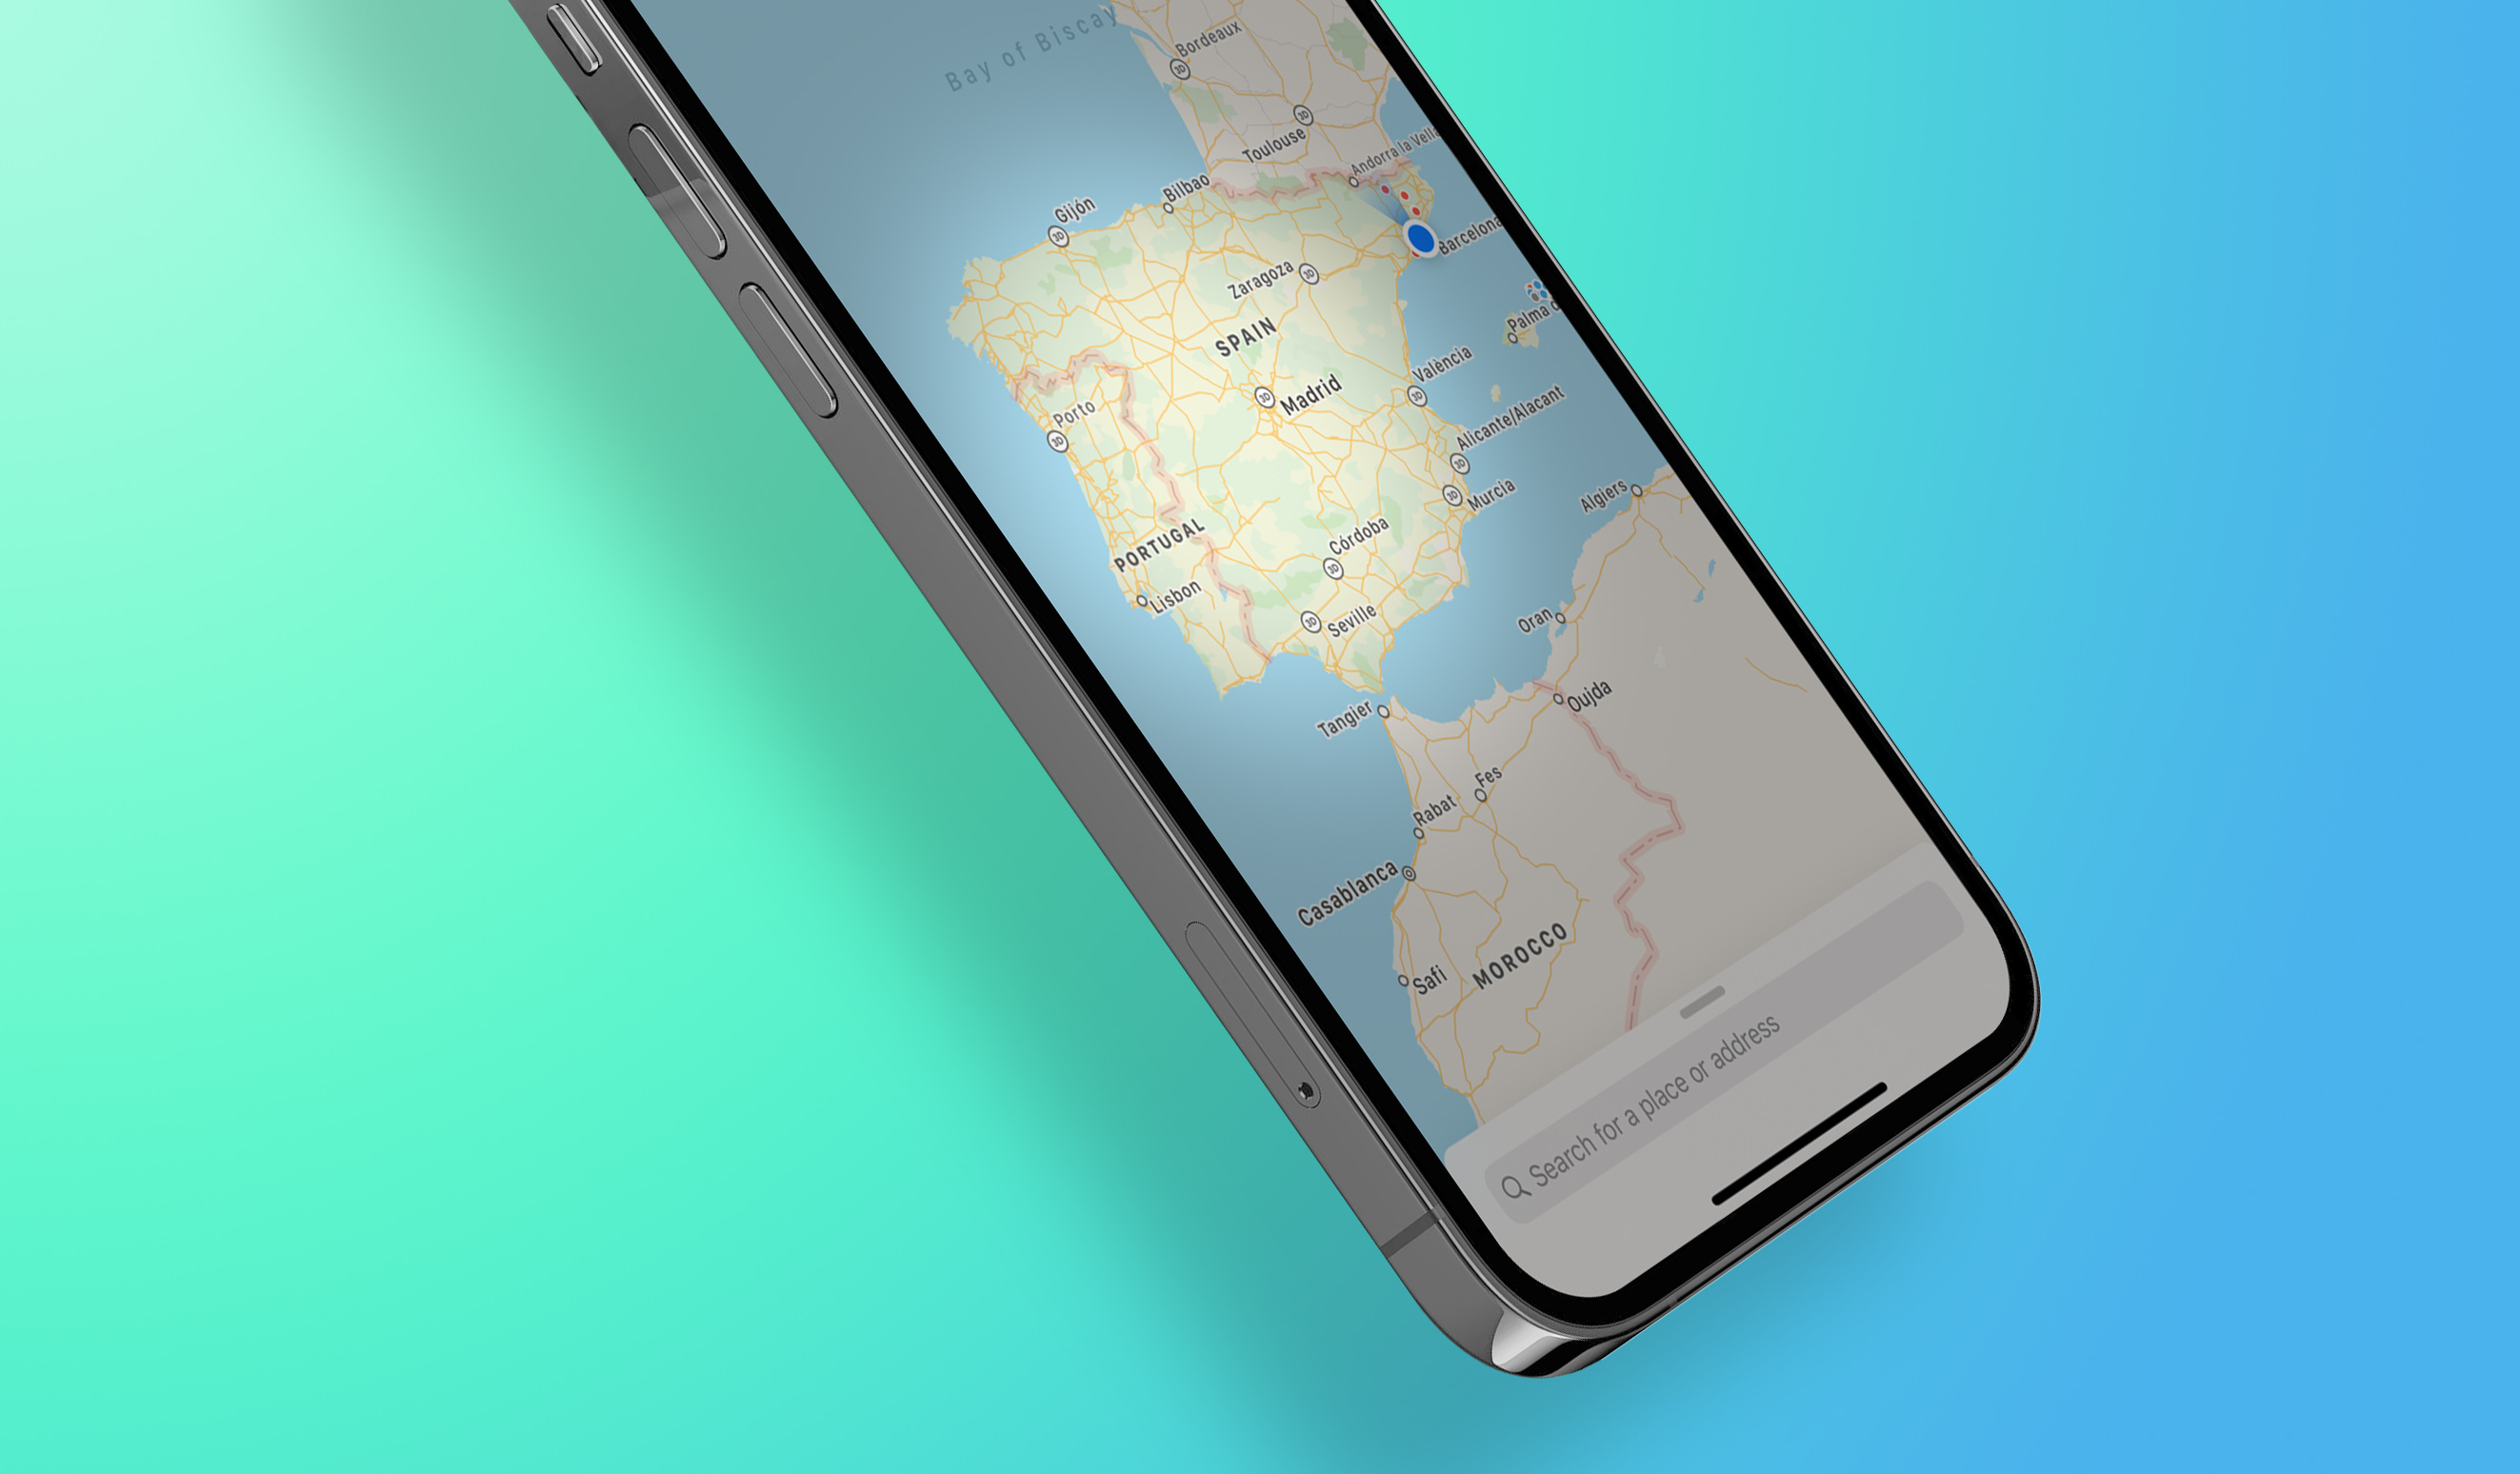 Revamped Apple Maps Now Being Tested in Spain and Portugal